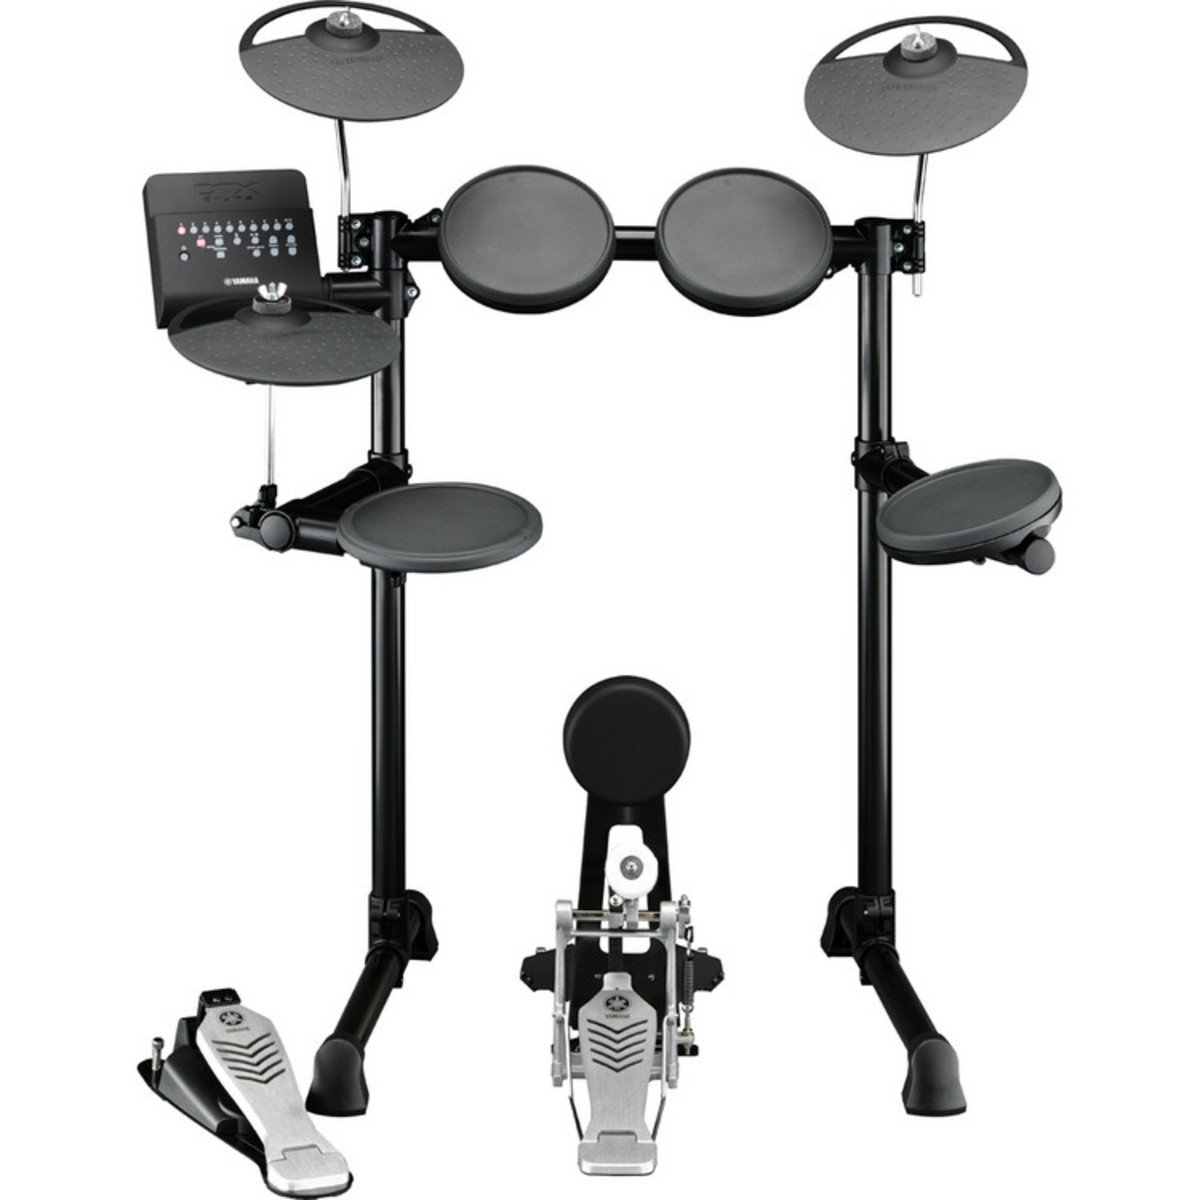 Yamaha dtx450k electronic drum kit nearly new at for Yamaha drums electronic